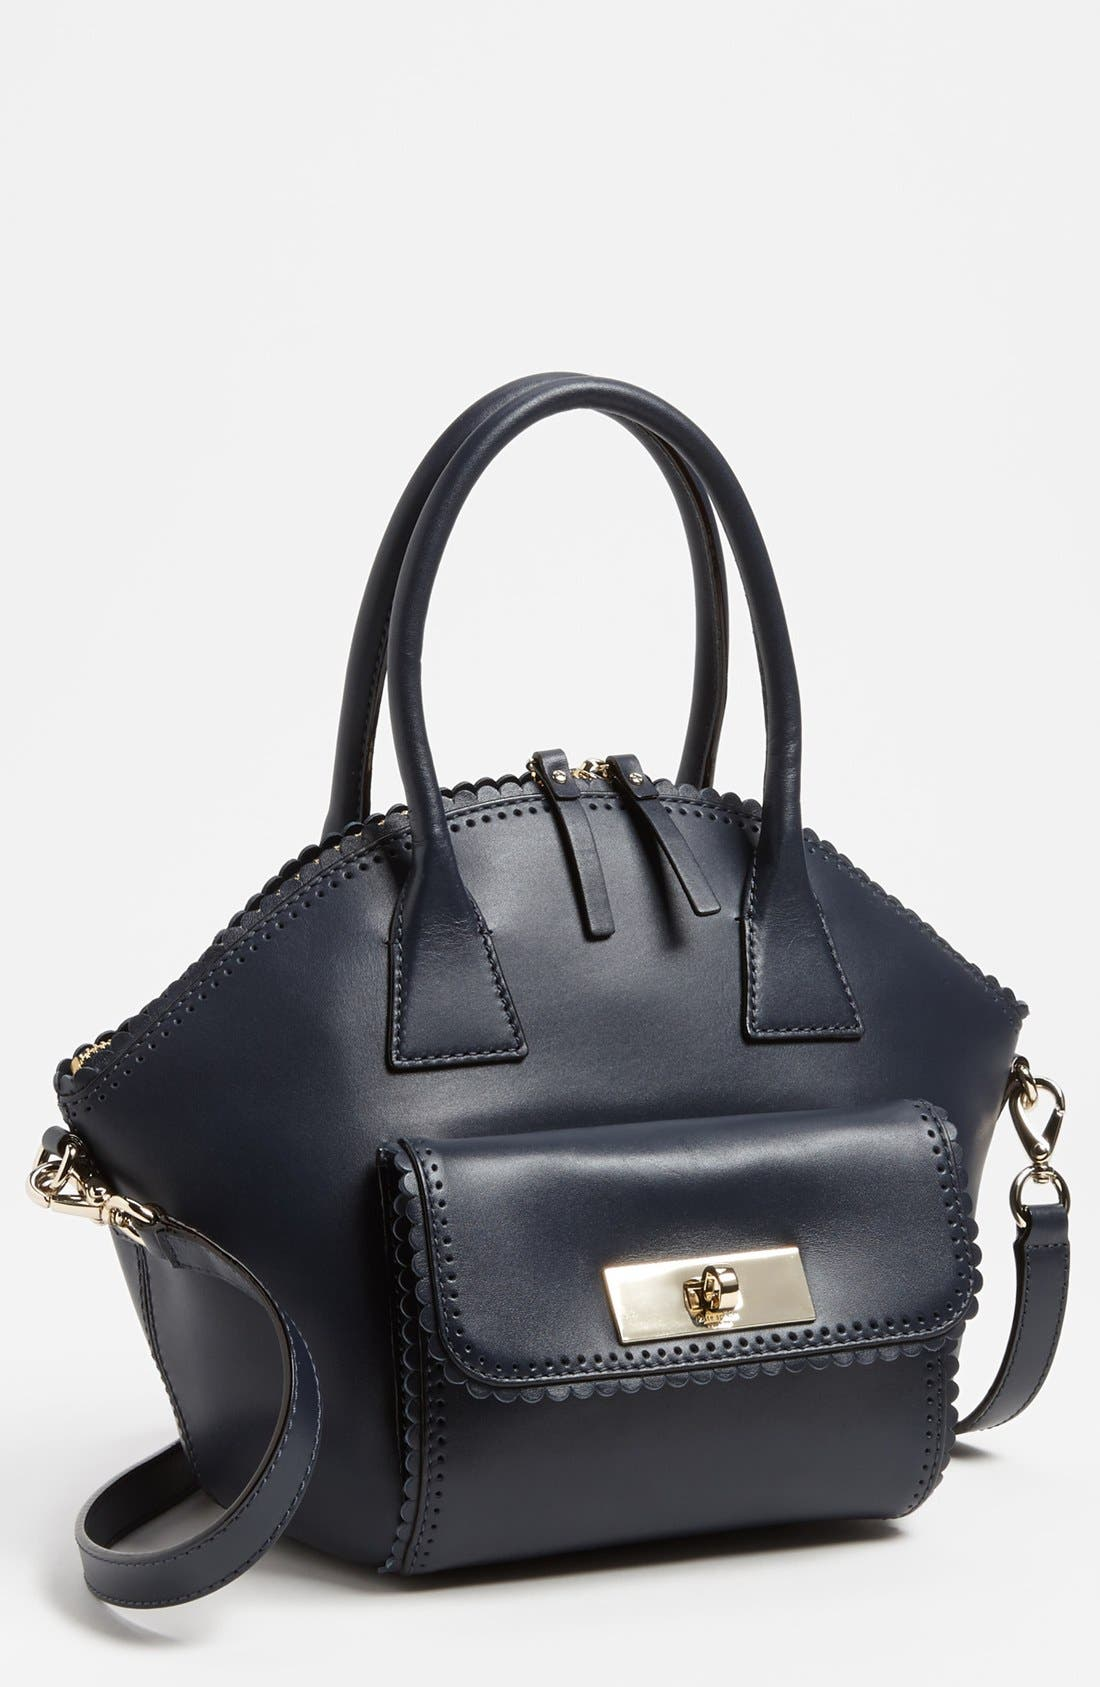 Main Image - kate spade new york 'palm springs - maggie' satchel